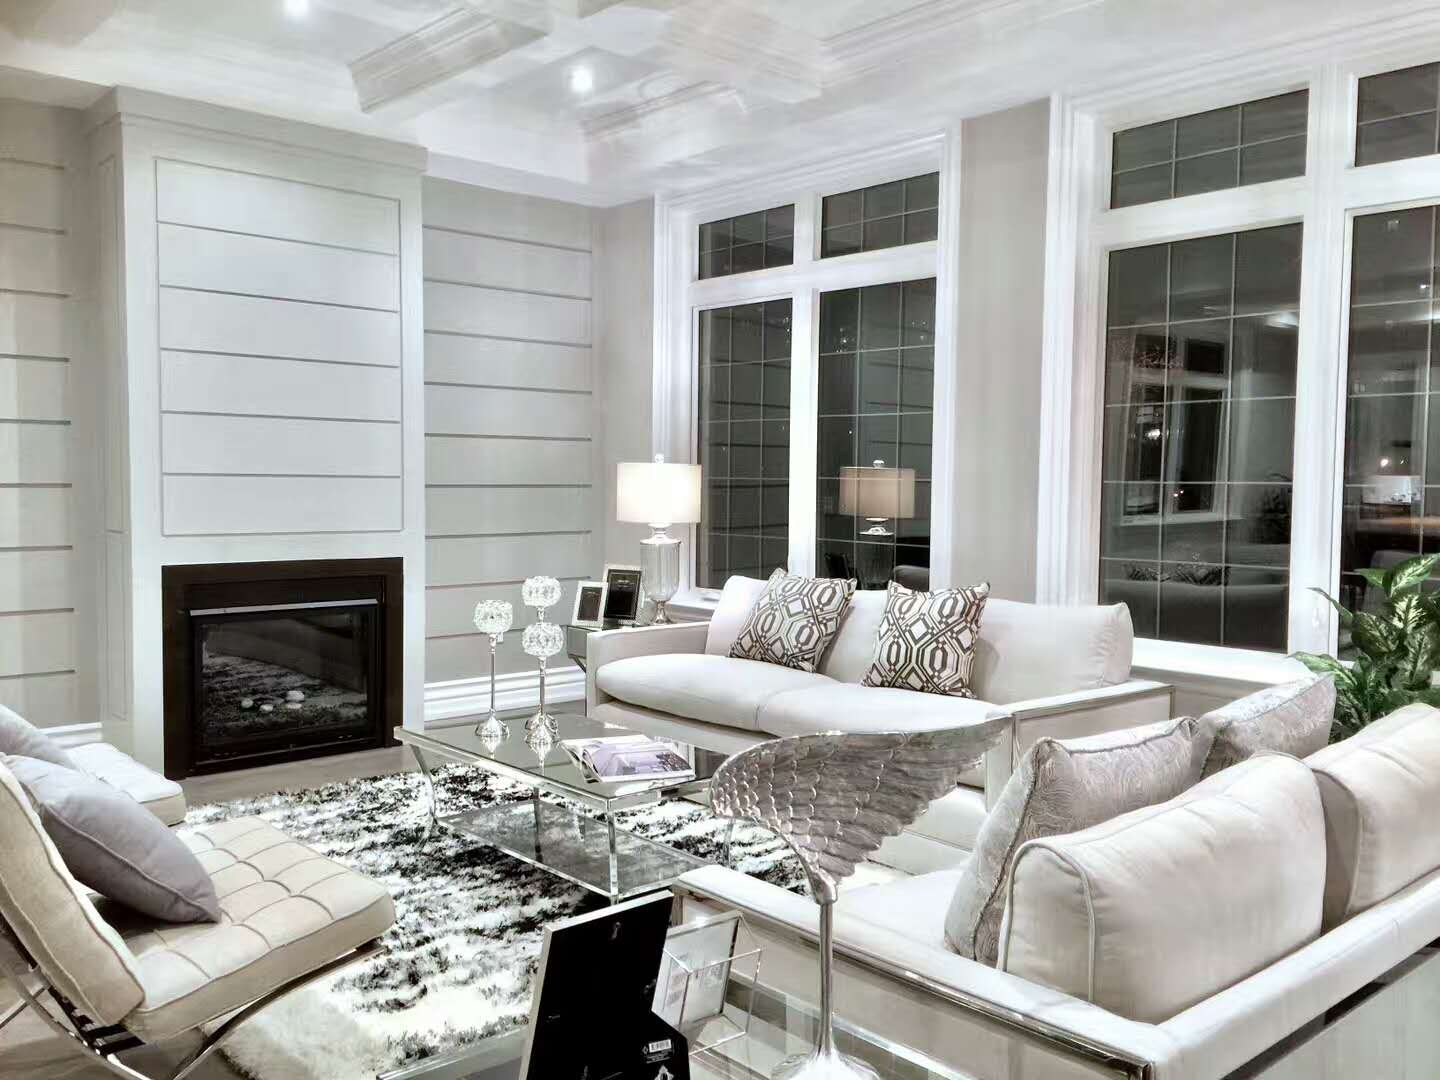 Getting ready to sell? 10 staging tips to wow home shoppers